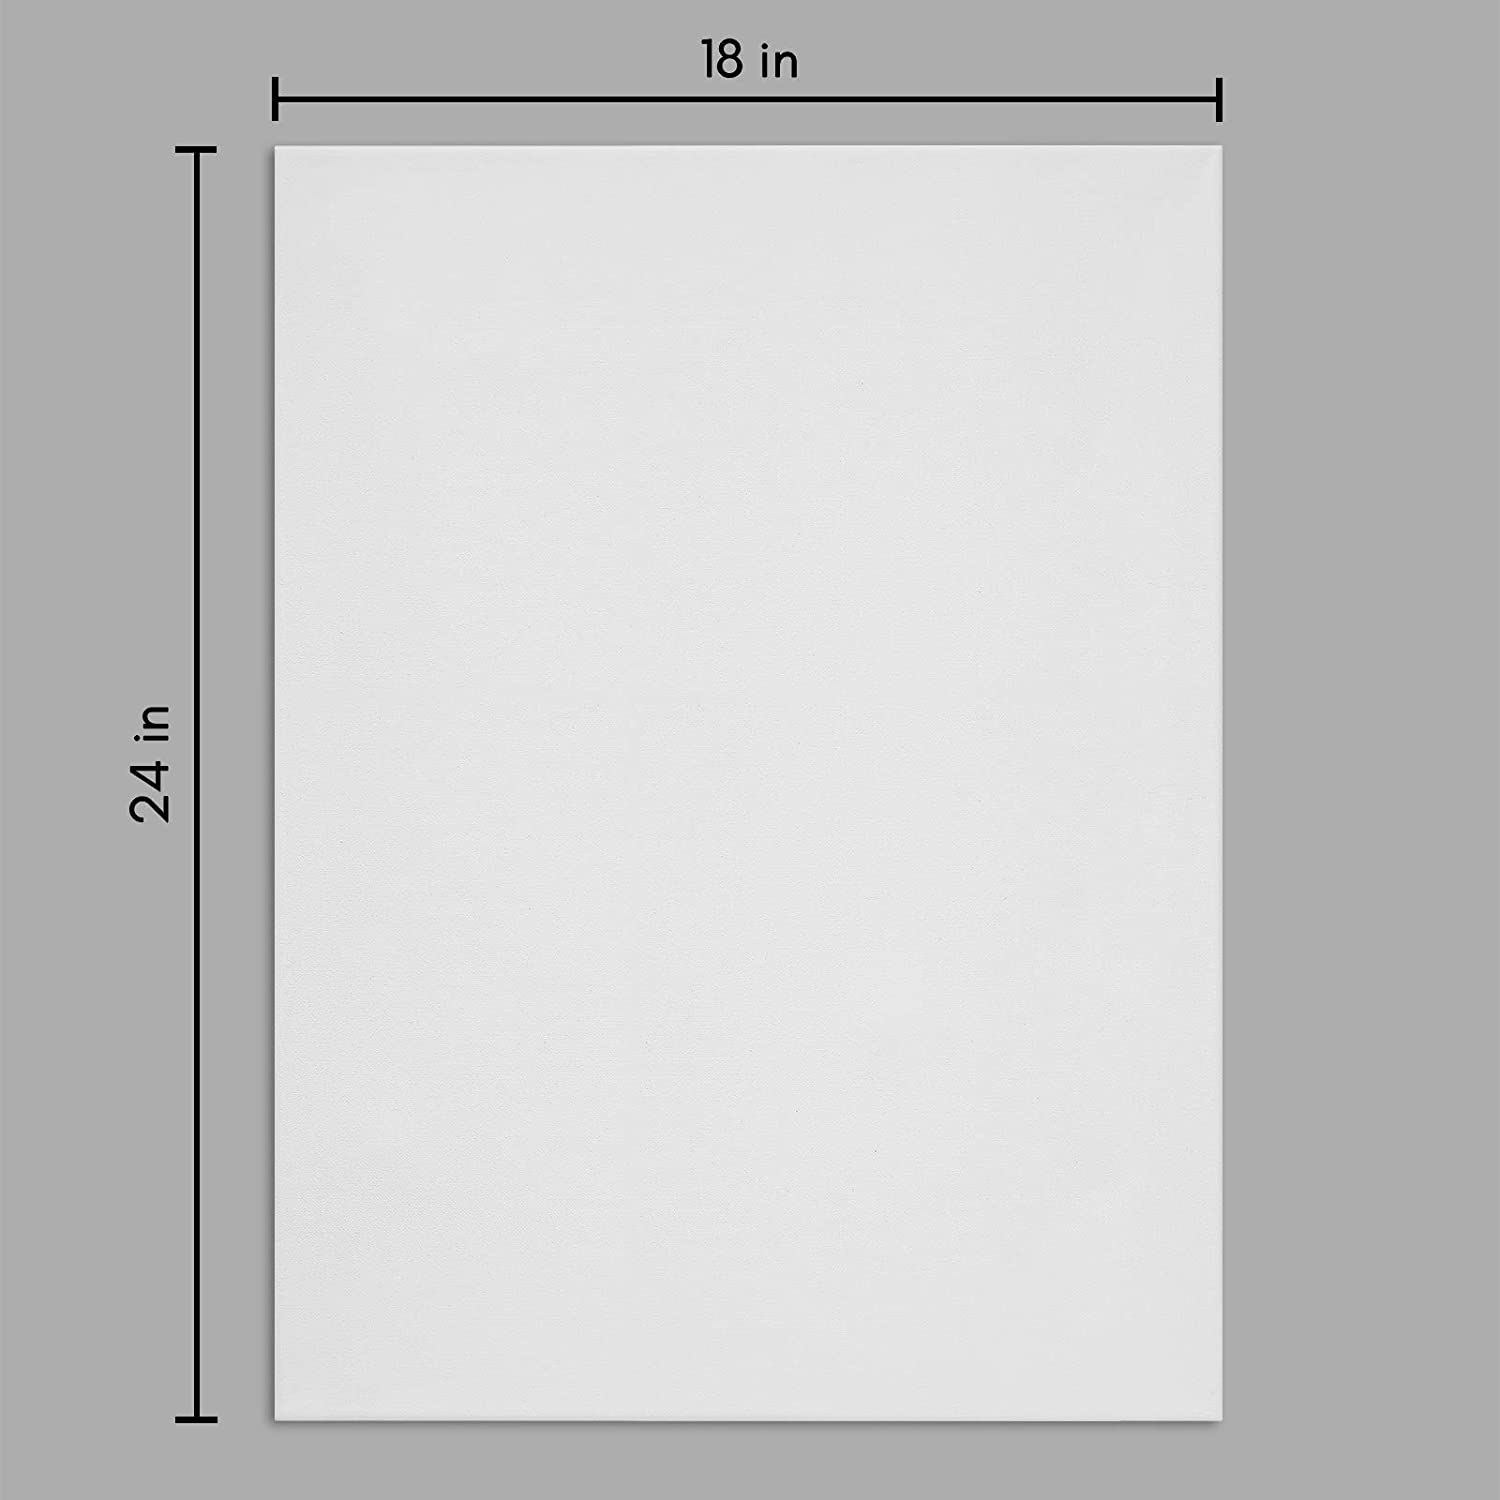 miniature 45 - Americanflat Stretched Canvas in White 100% Cotton Wooden Frames & Acid Free